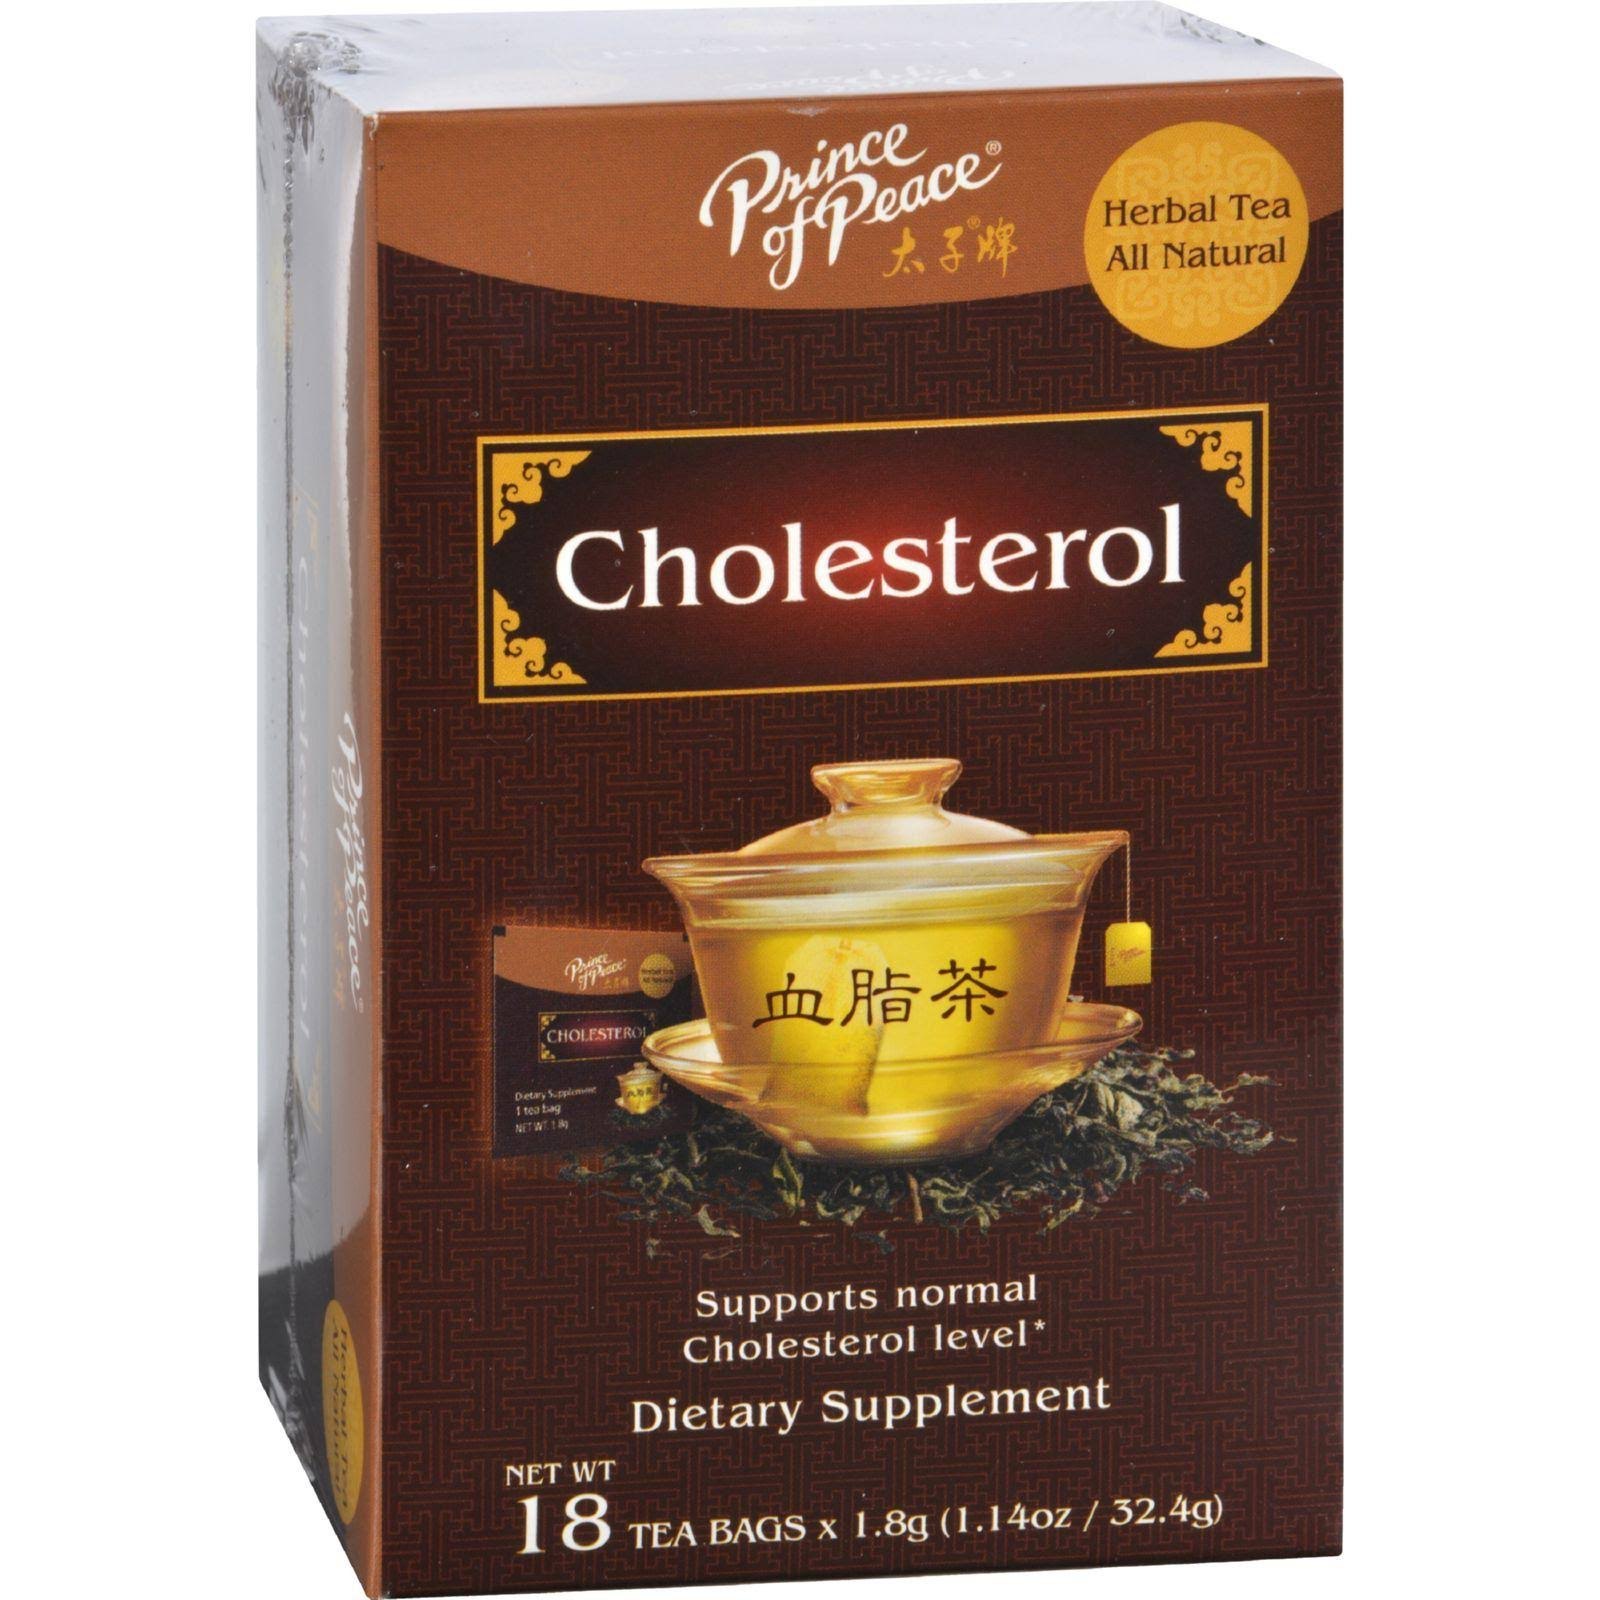 Prince of Peace Cholesterol Herbal Tea - 18 Tea Bags, 32.4g